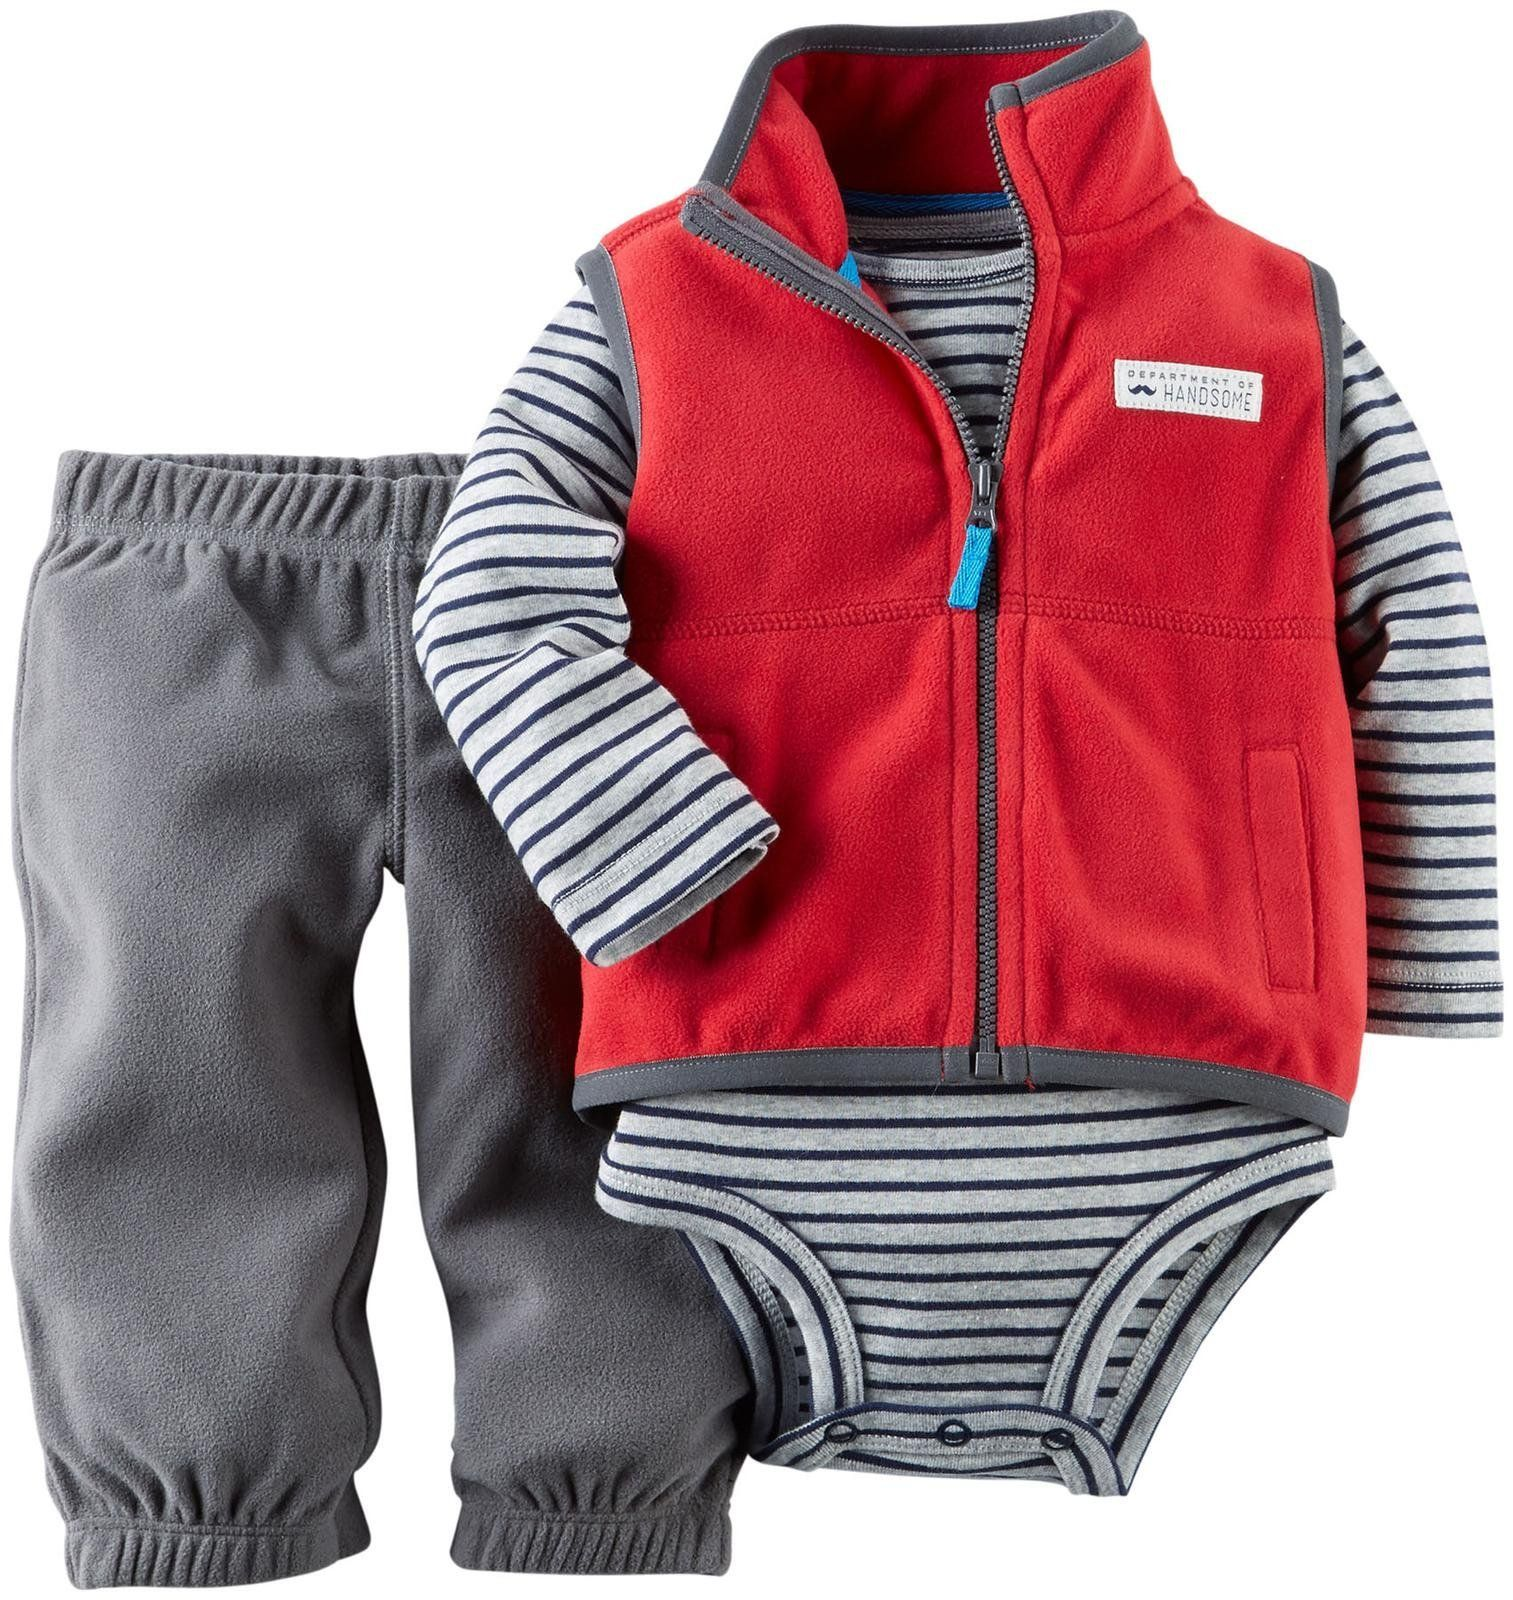 a5a3cadb1069 Amazon.com  Carter s Baby Boys  3 Piece Fleece Vest Set (Baby ...